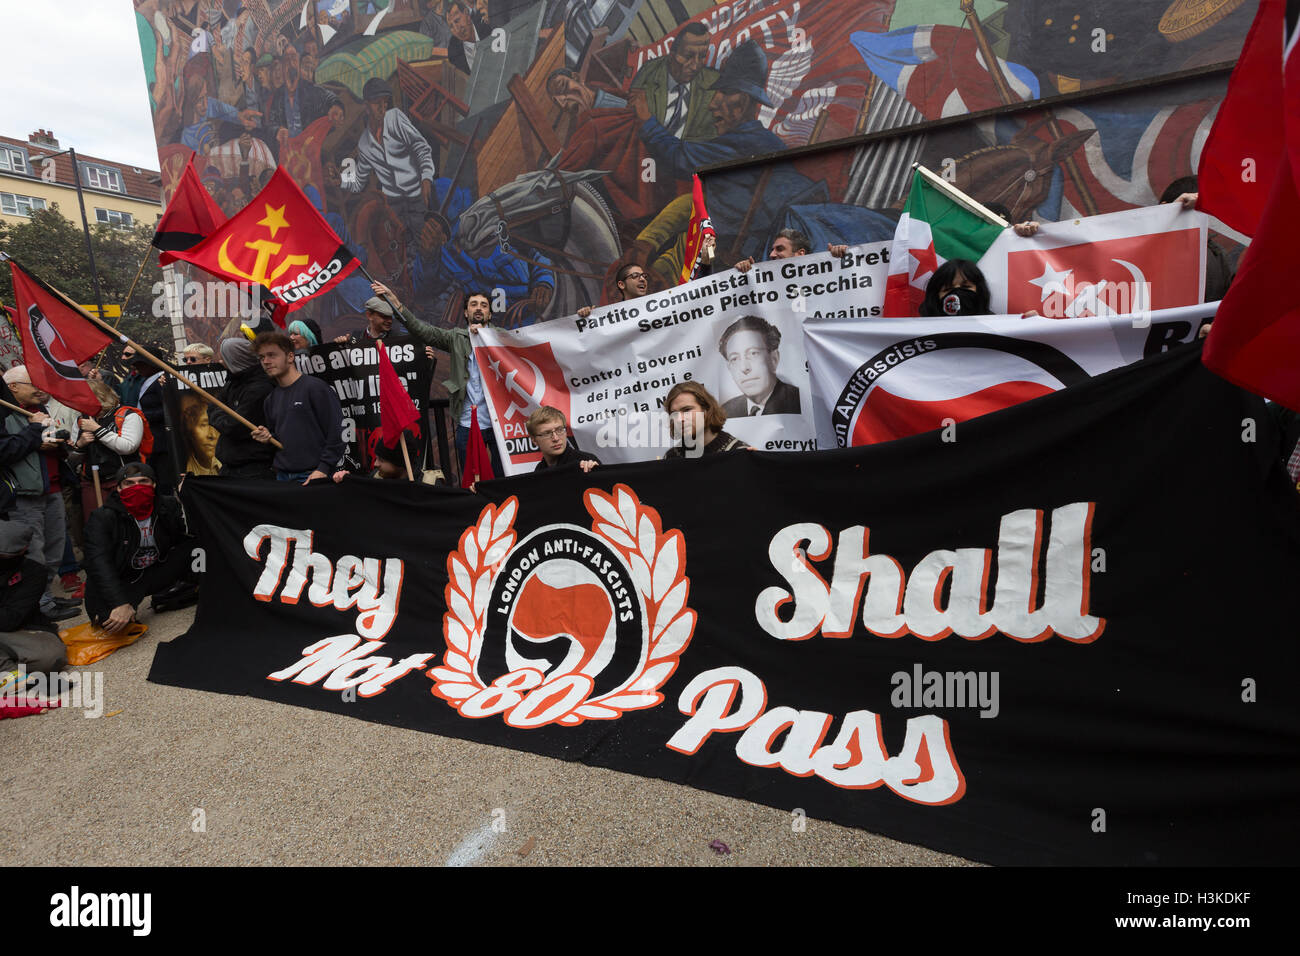 London, UK. 9th October 2016. Anarchists and anti-fascists protest at the Cable Street Mural during a rally to mark - Stock Image